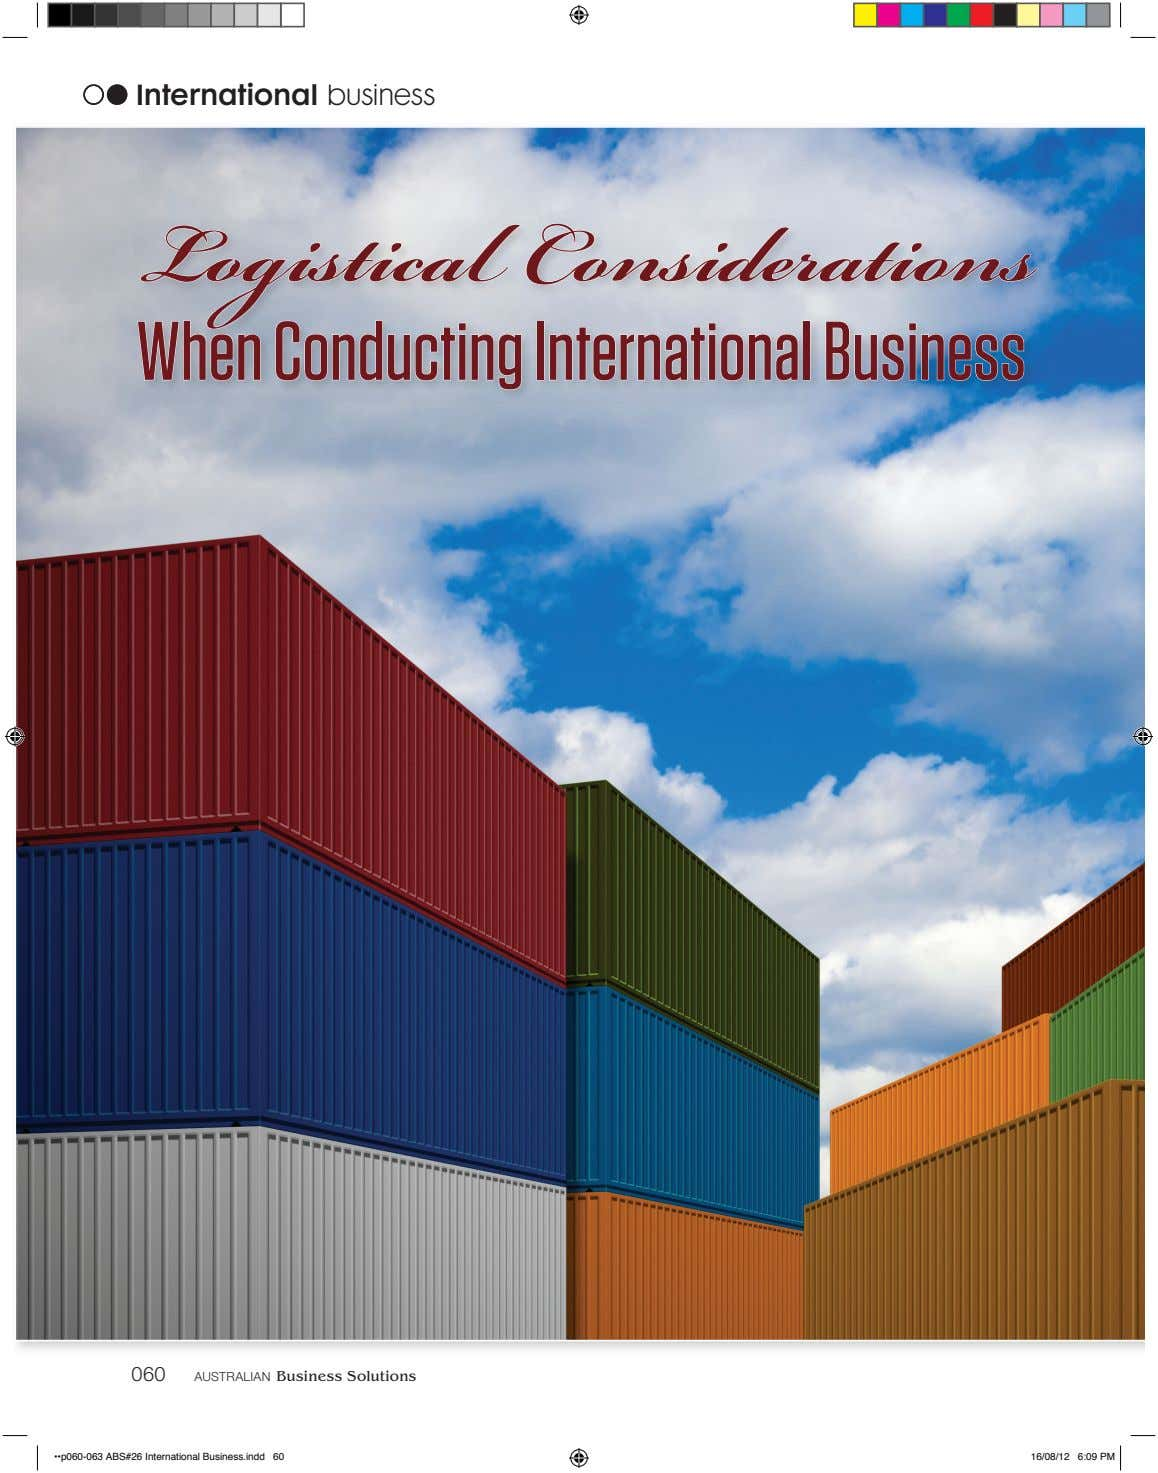 International business Logistical Considerations When Conducting International Business 060 AUSTR A LI A N Business Solutions